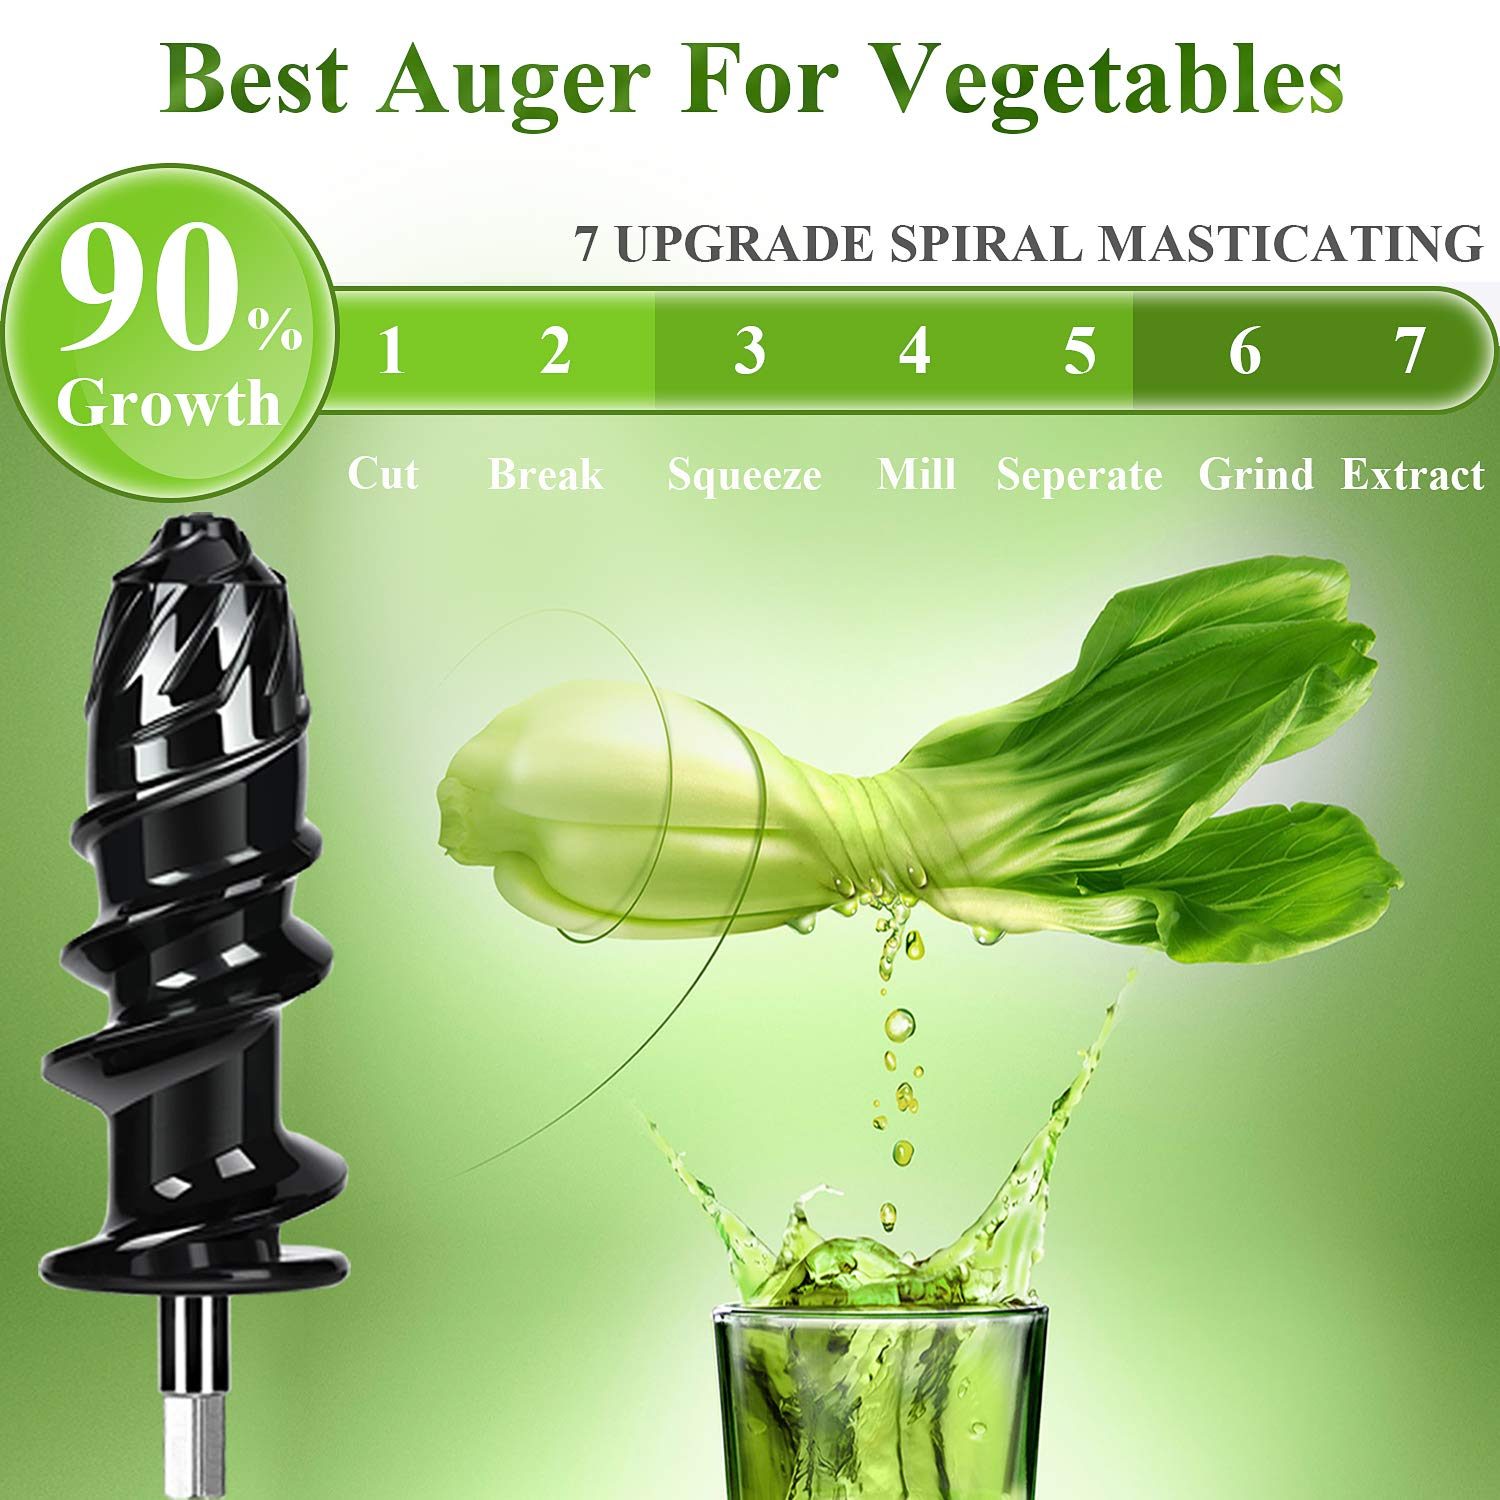 Aobosi Slow Masticating juicer Extractor, Cold Press Juicer Machine, Quiet Motor, Reverse Function, High Nutrient Fruit and Vegetable Juice with Juice Jug & Brush for Cleaning by AAOBOSI (Image #2)